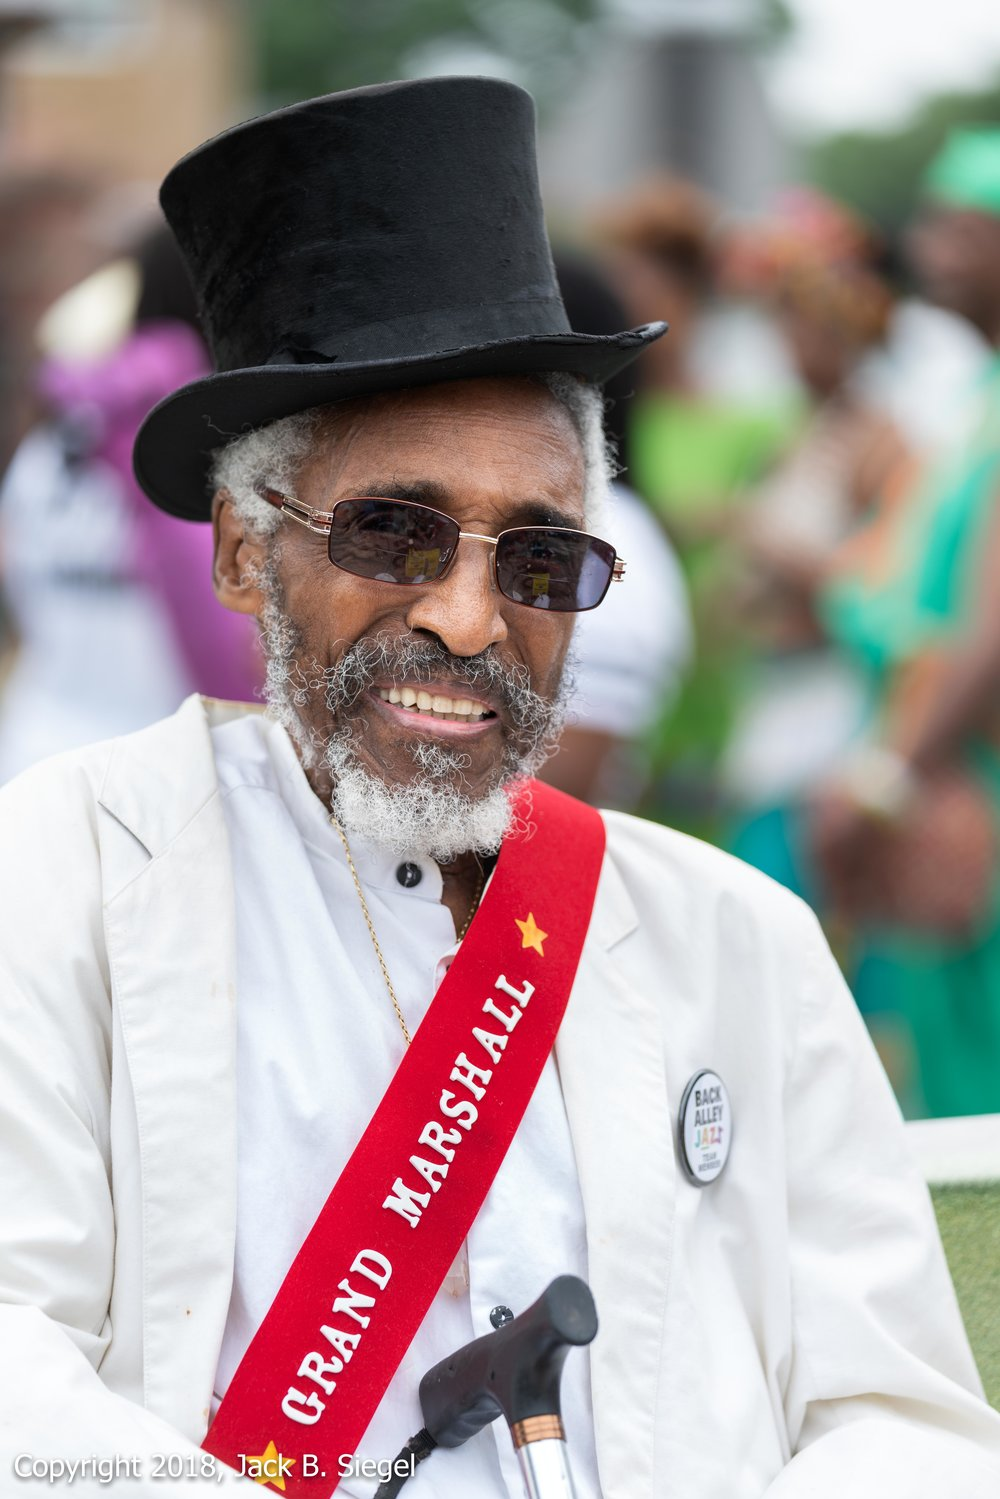 _DS25256_Copyright 2018 jpeg_Jimmy Ellis, Grand Marshall and One of the Founding Fathers.jpg